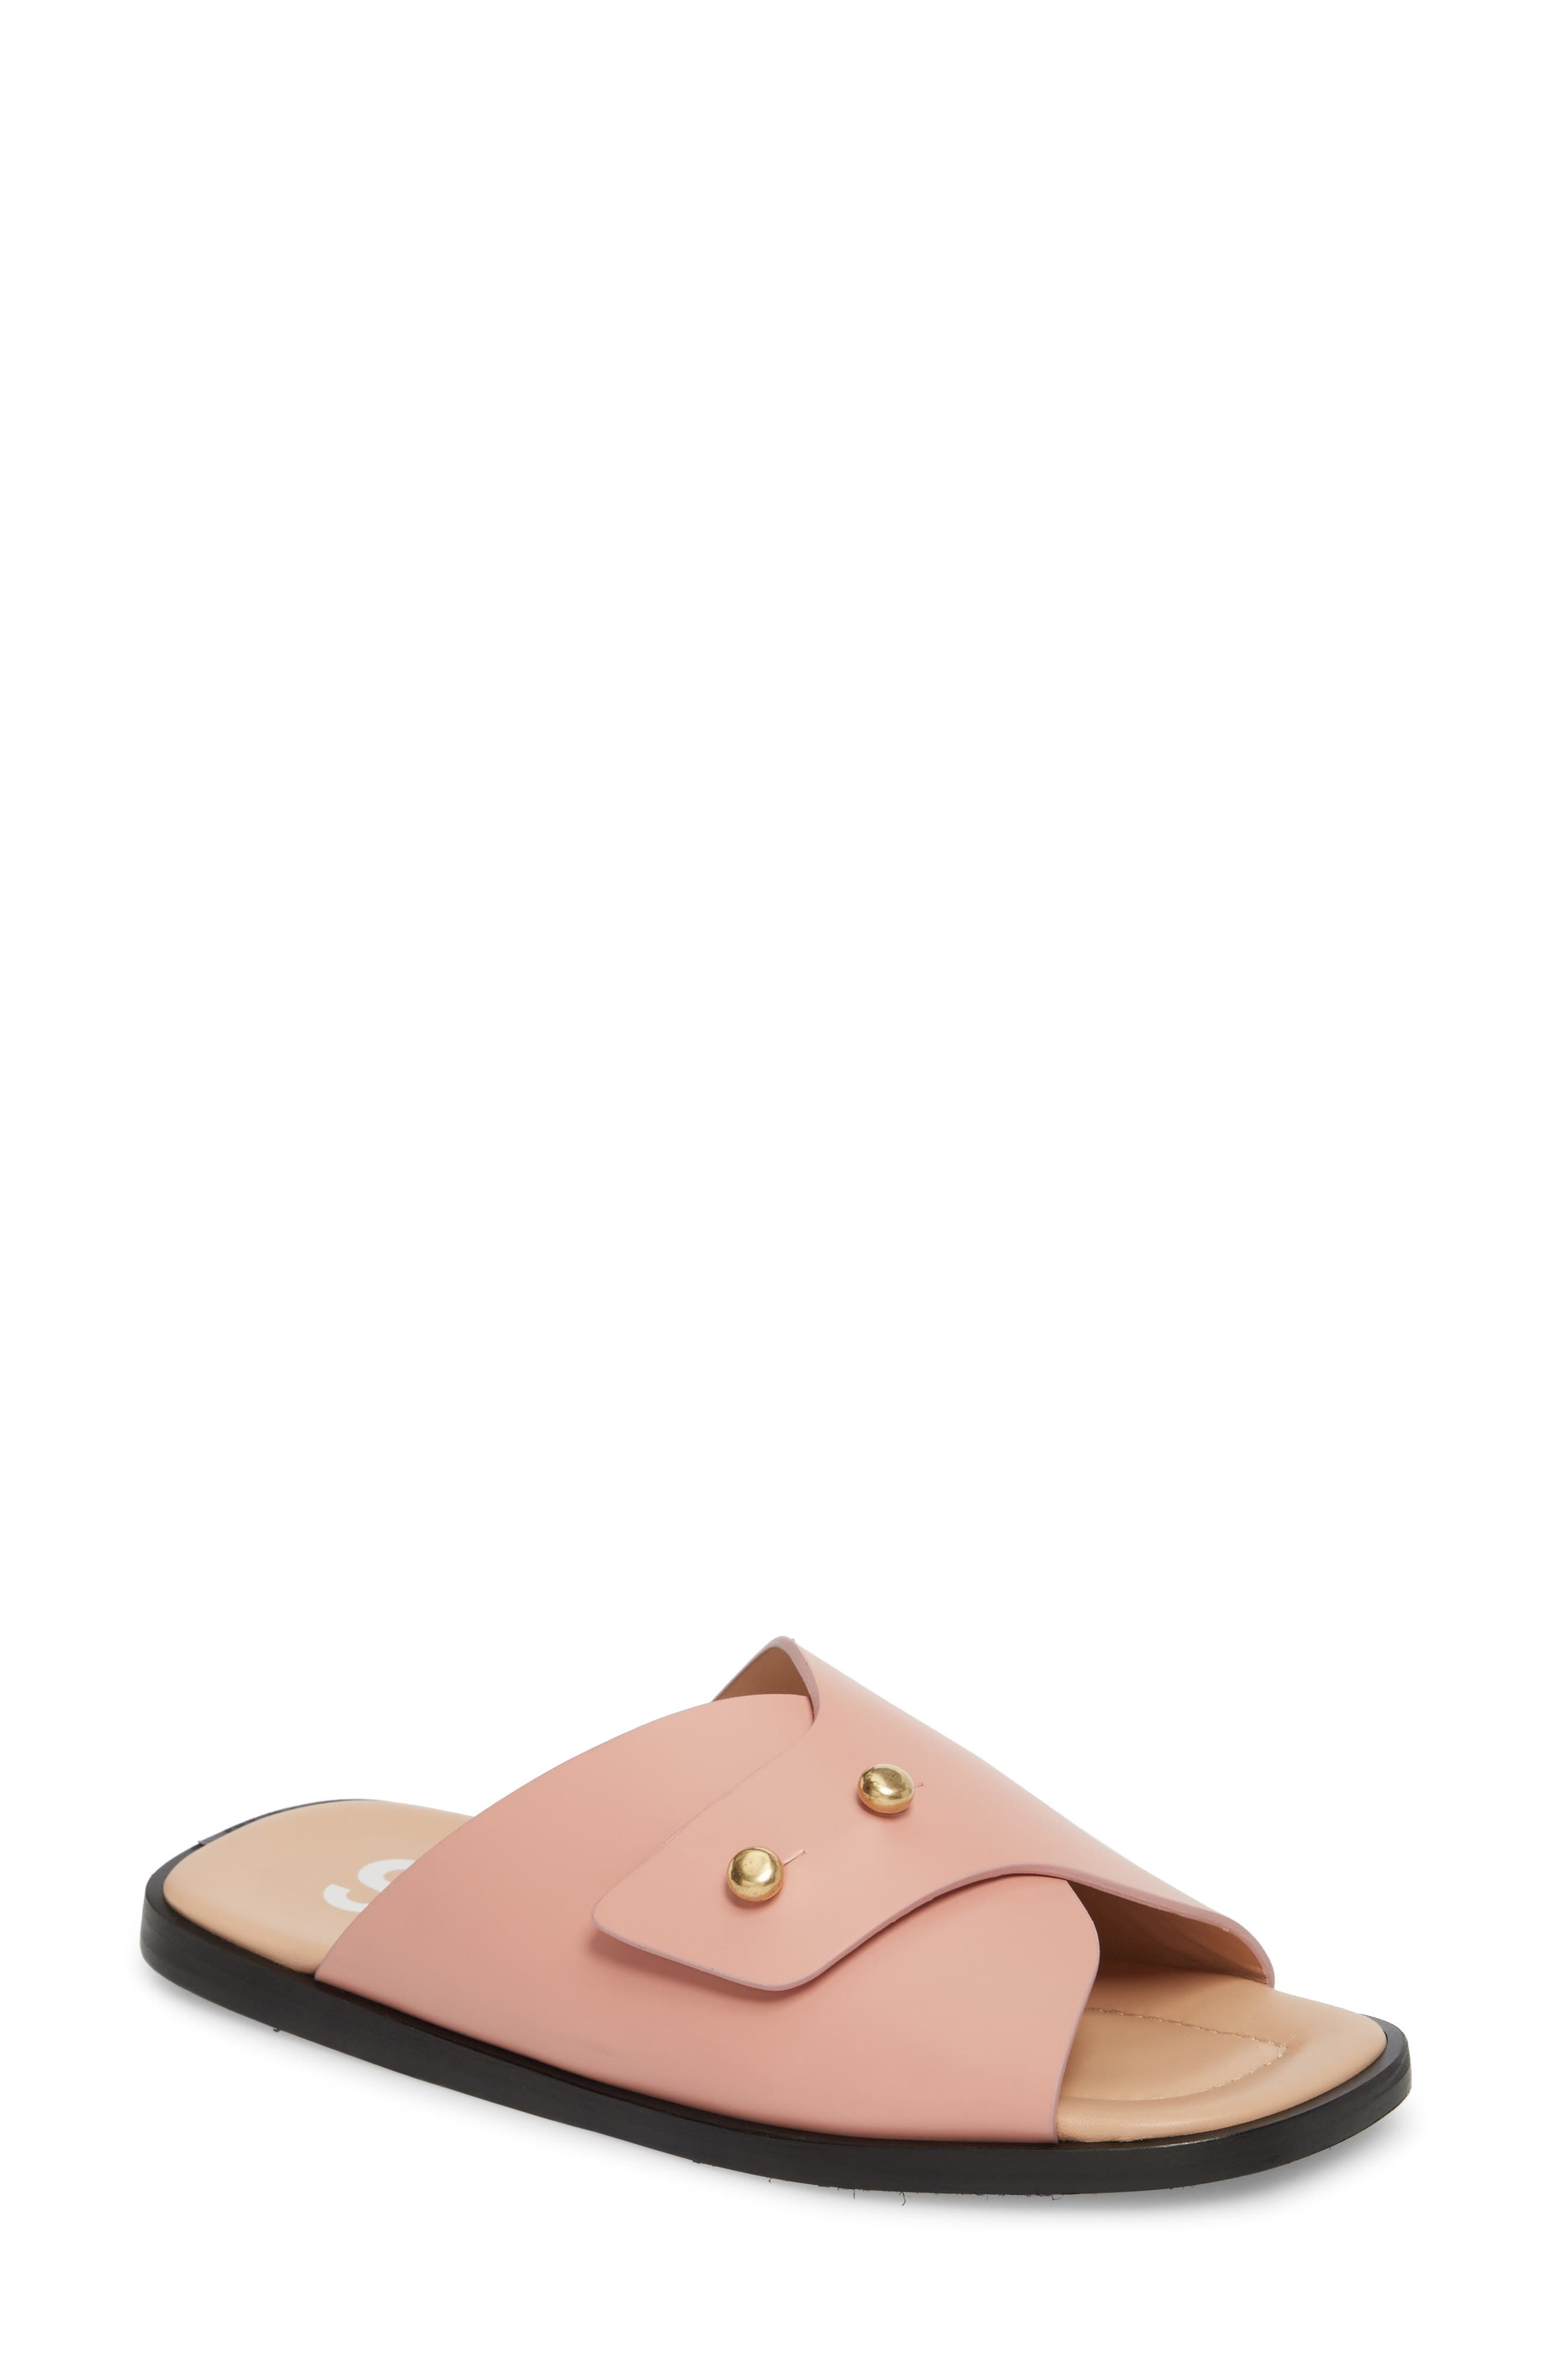 Jilly Studded Slide Sandal,                         Main,                         color, Pink